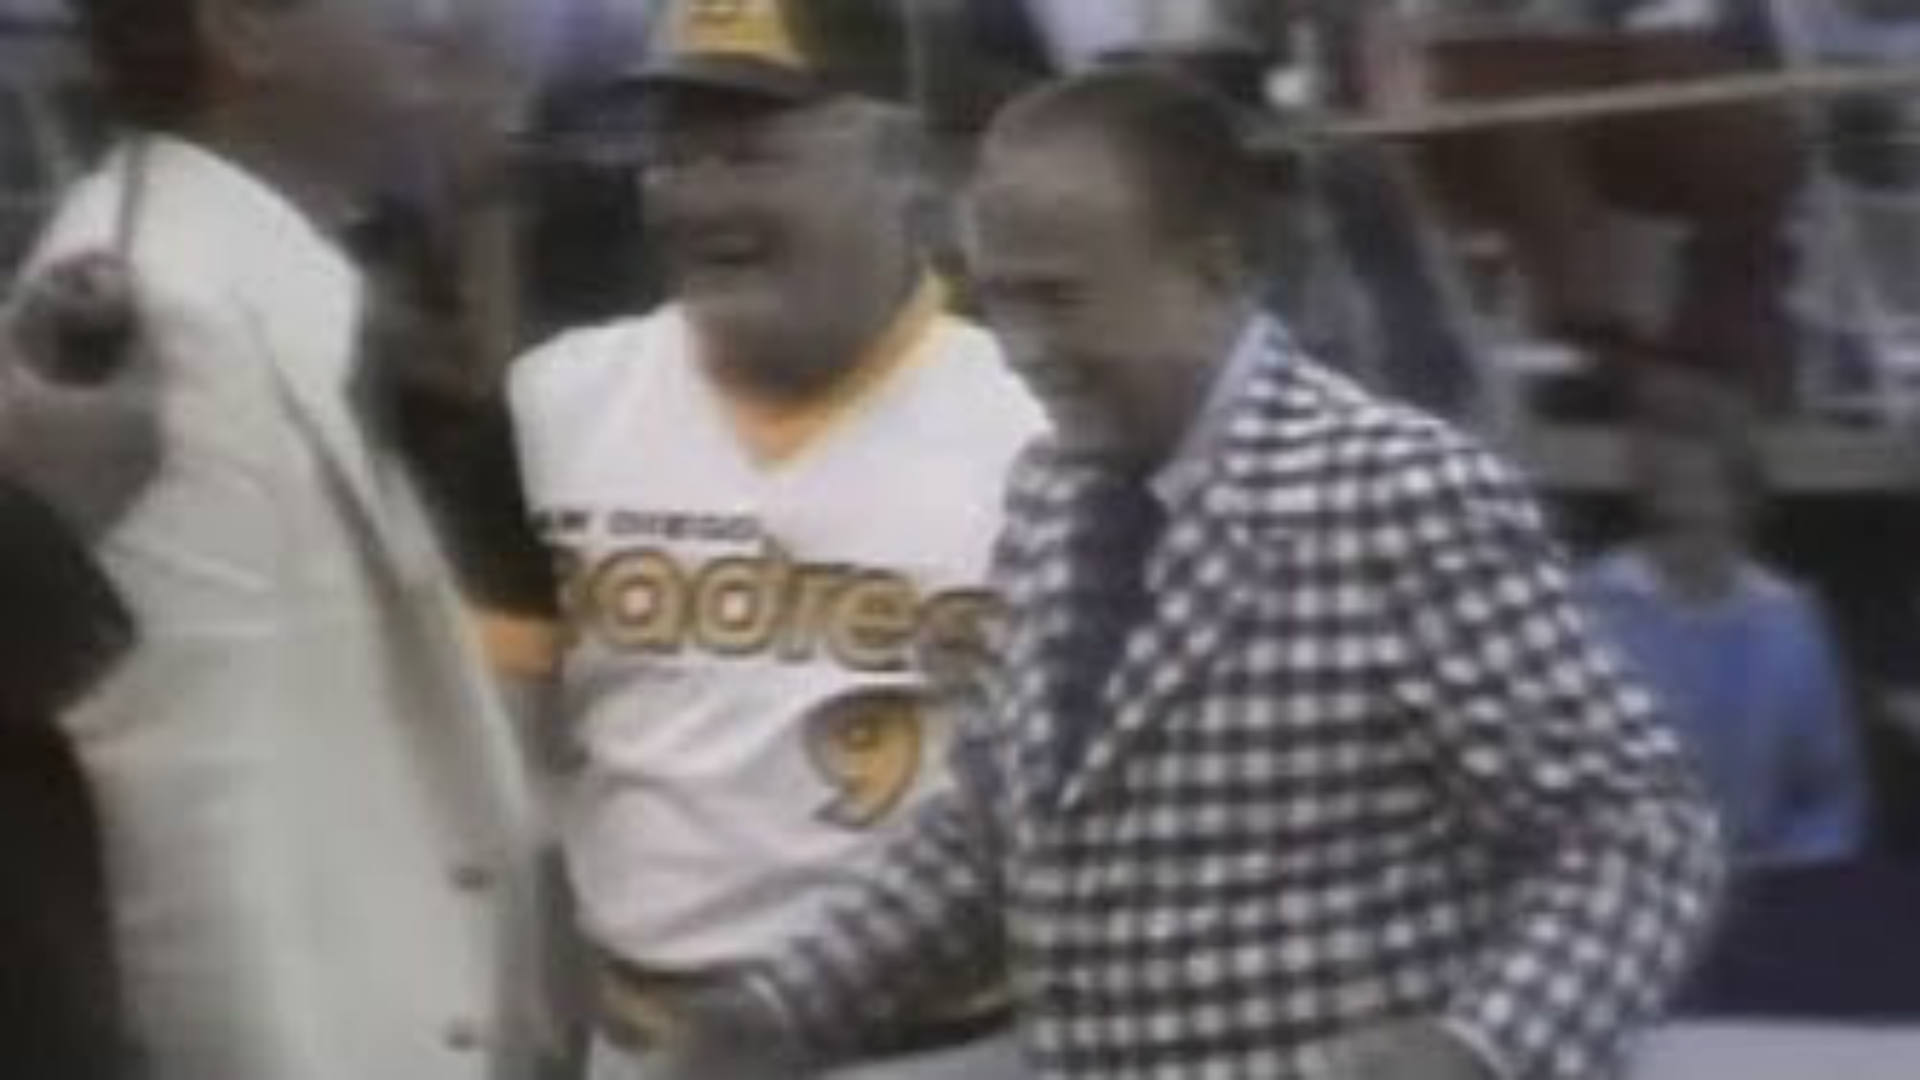 That time Padres owner Ray Kroc got on the PA system and called his team 'silly'